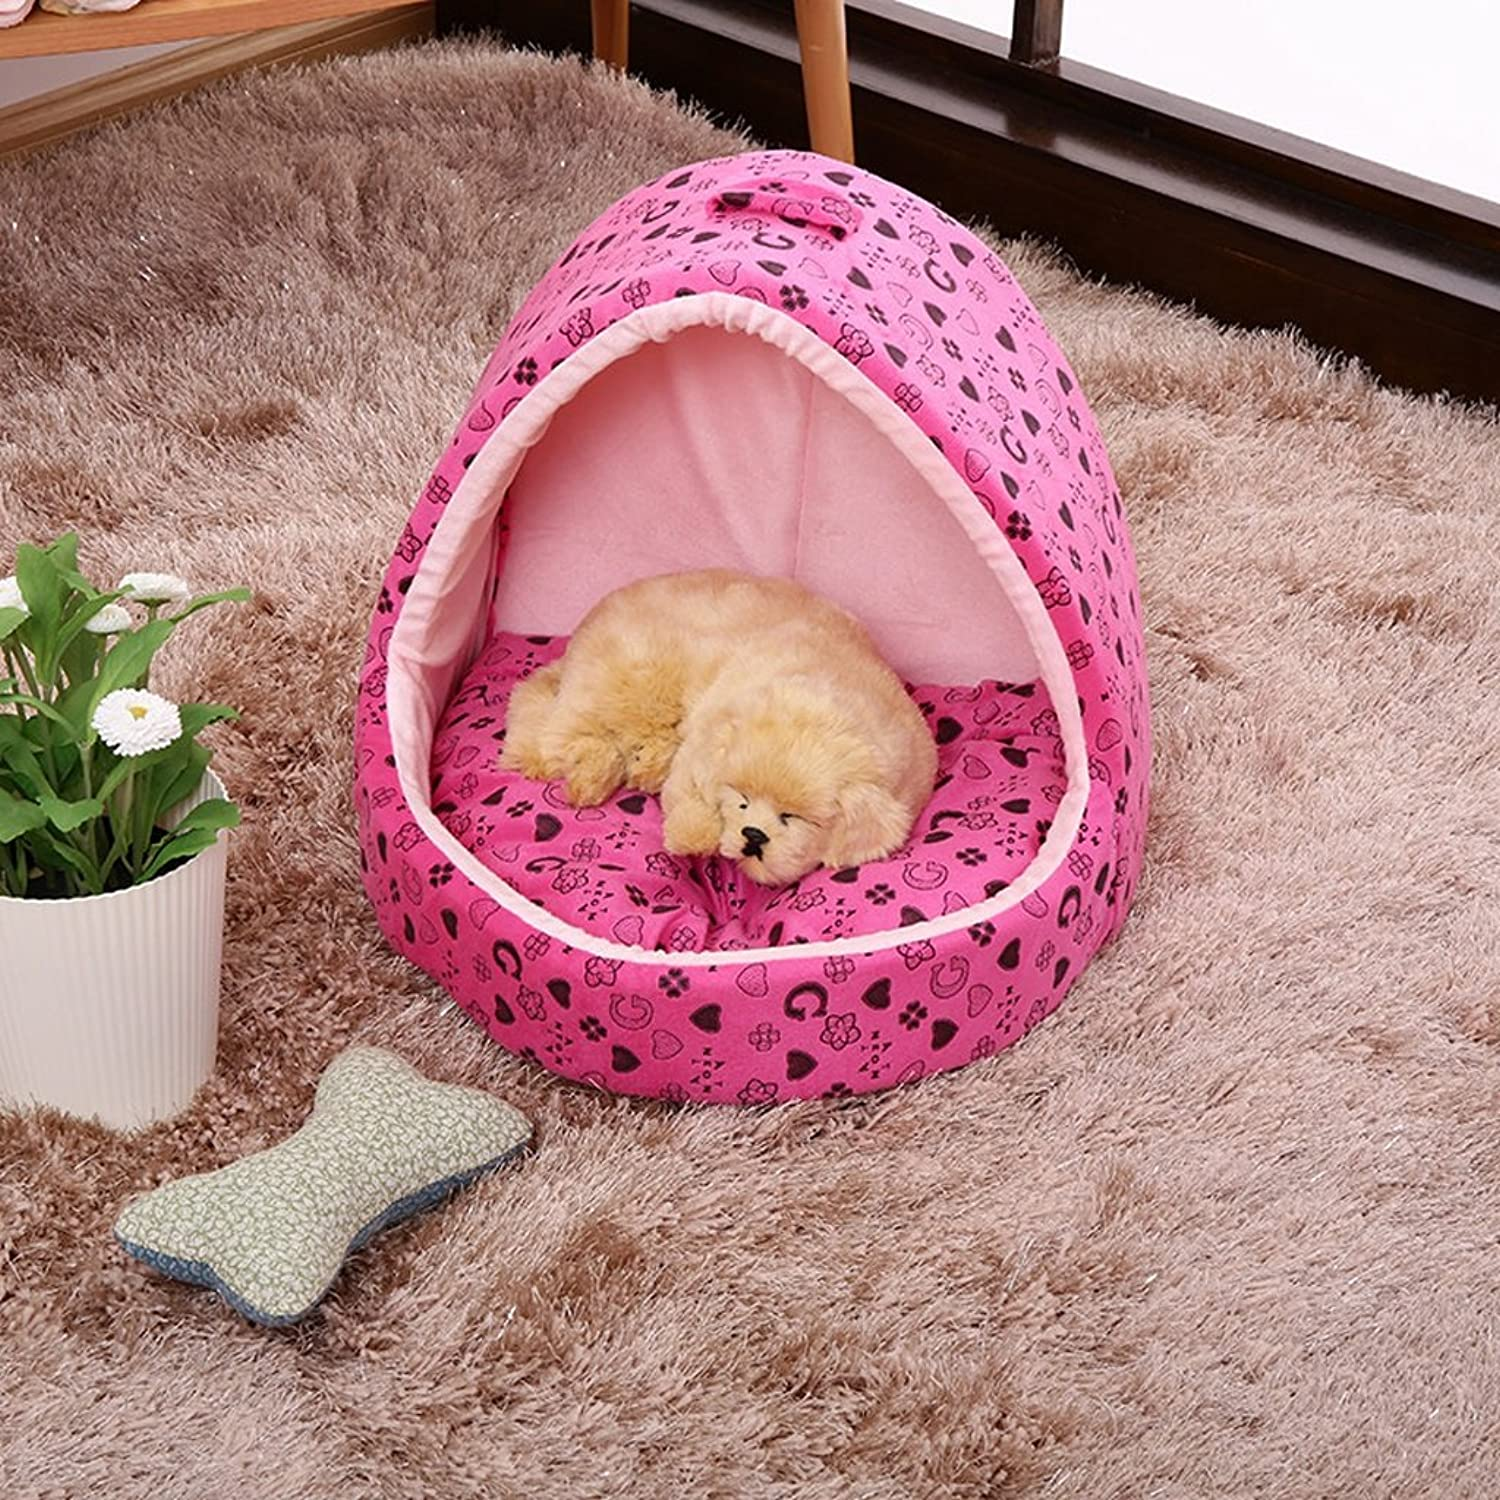 Kennel GAOLILI Dog House Cat Litter Box Winter Pet House Wash Dog House Yurt Puppy Than Bear Teddy Dog Supplies (color   A, Size   43  43  38cm)